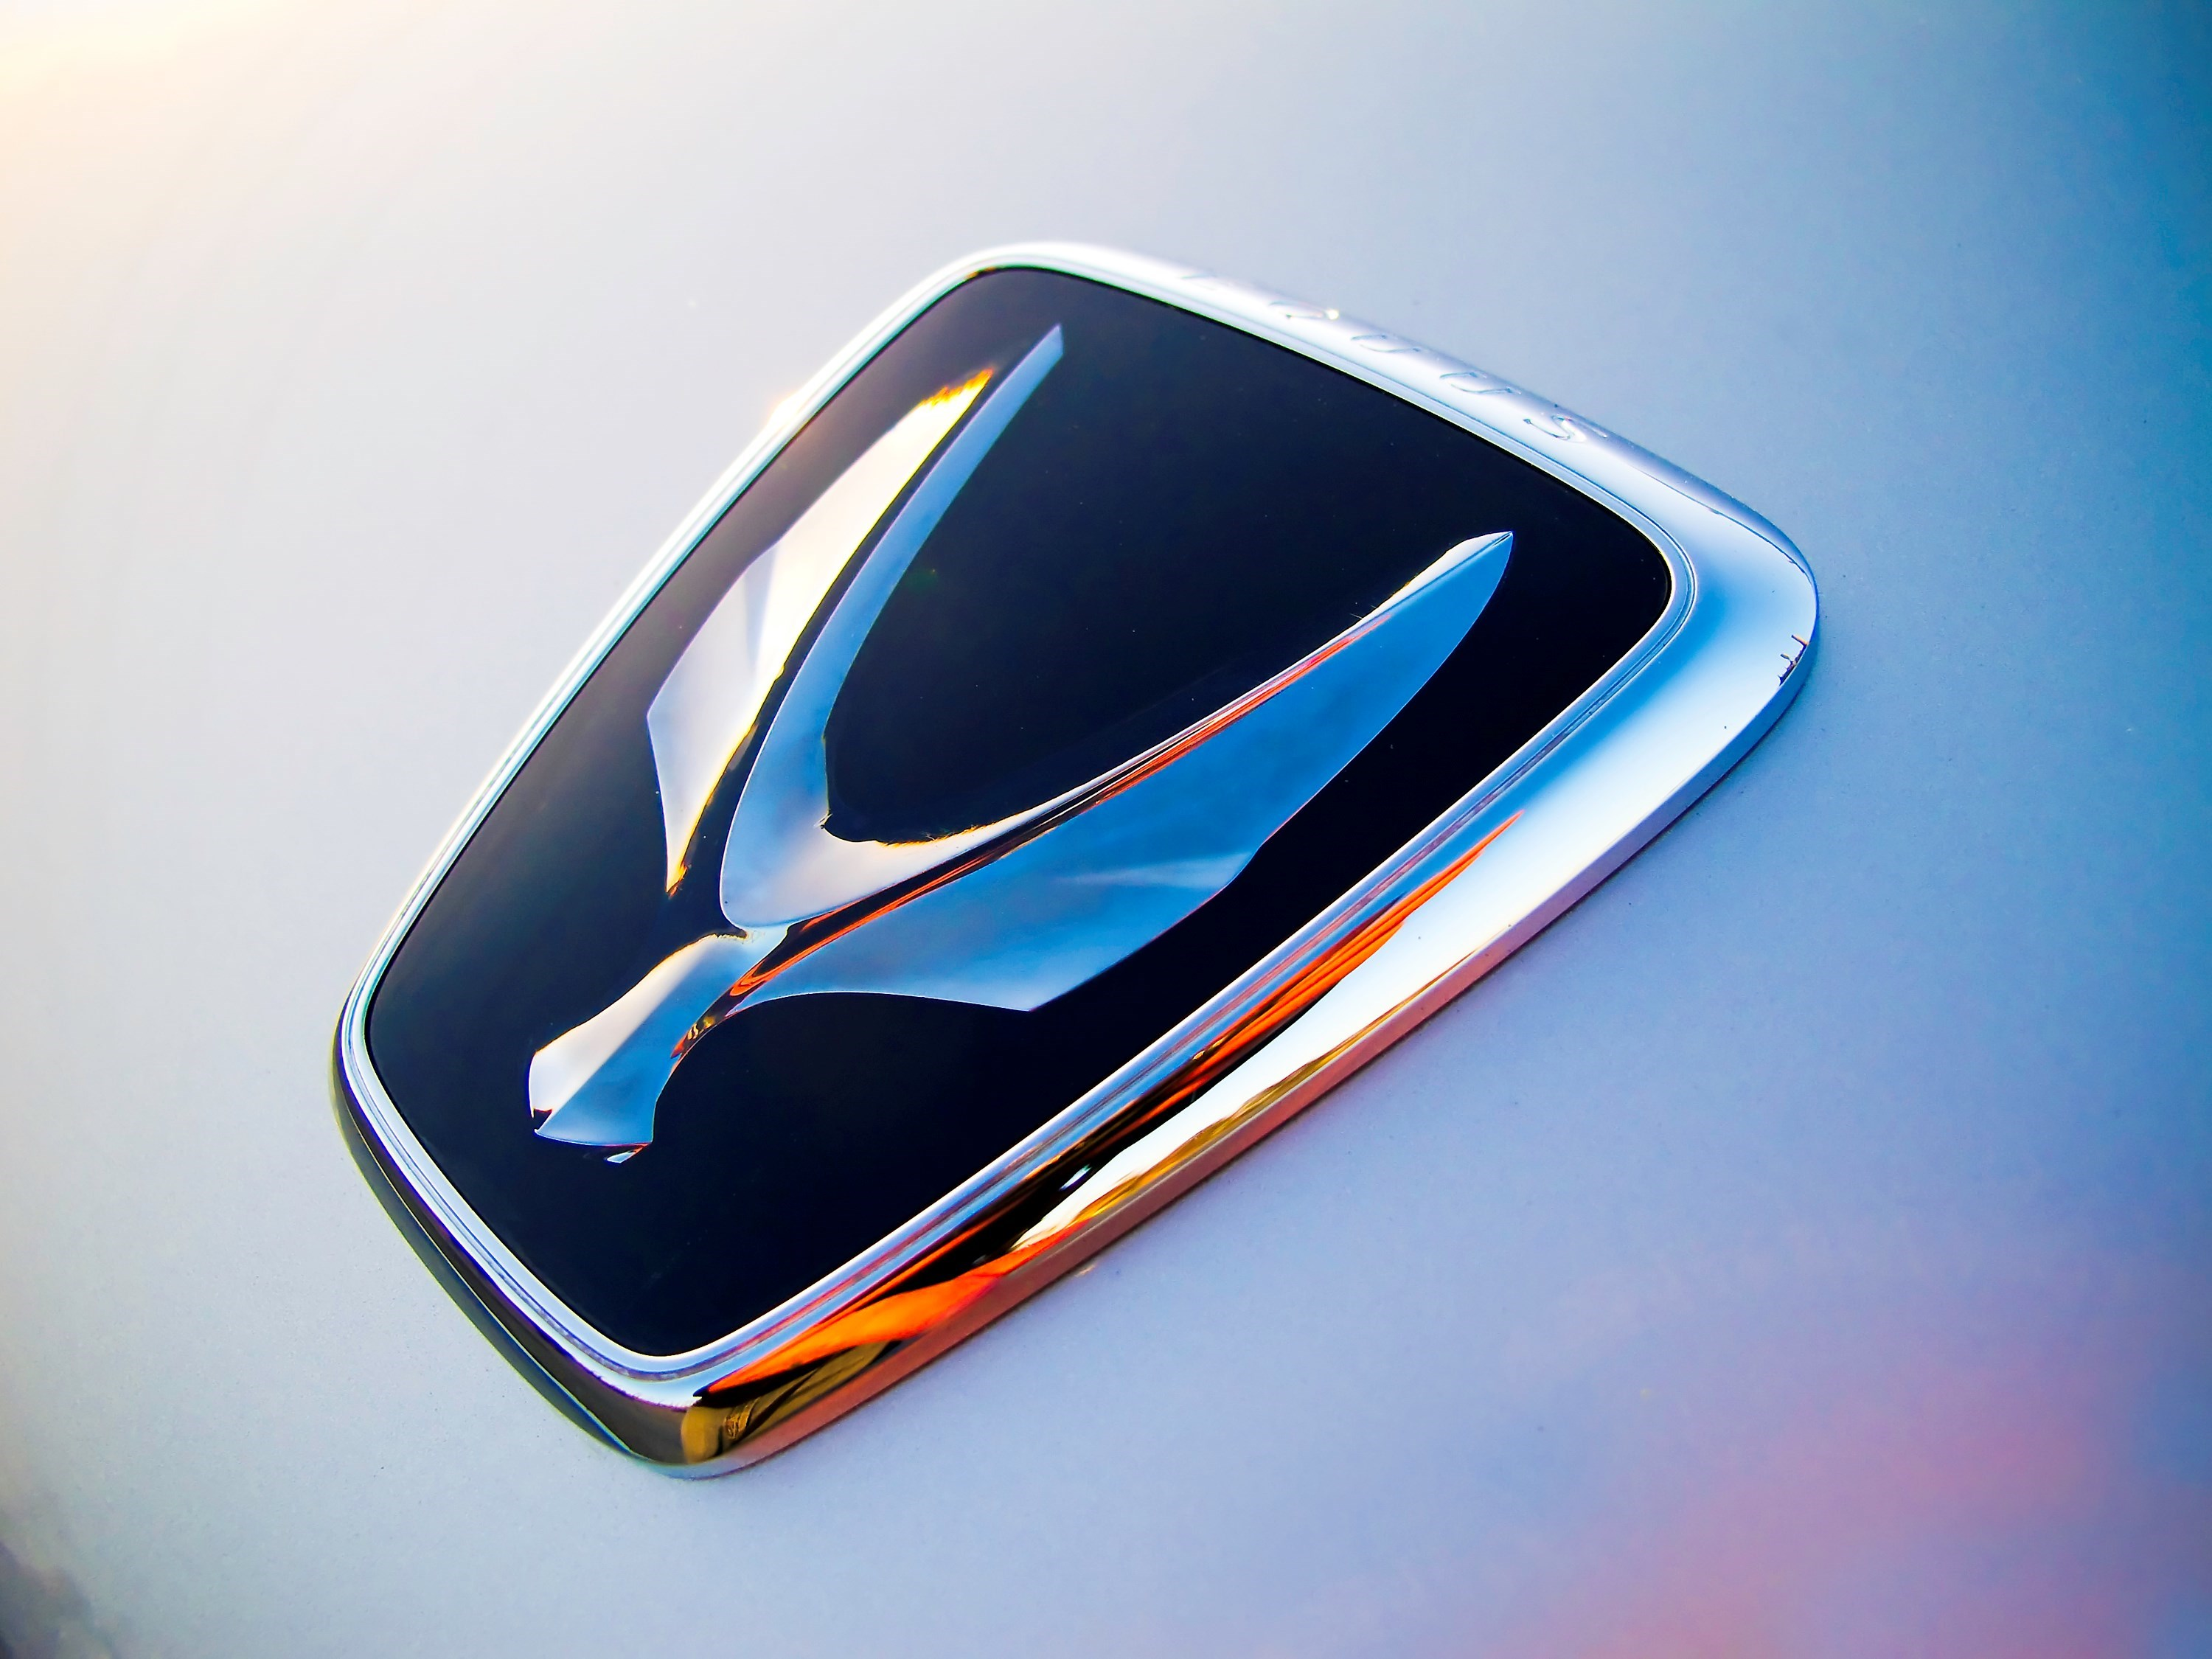 Behind the badge the forgotten hyundai equus logo its deceptive design the news wheel